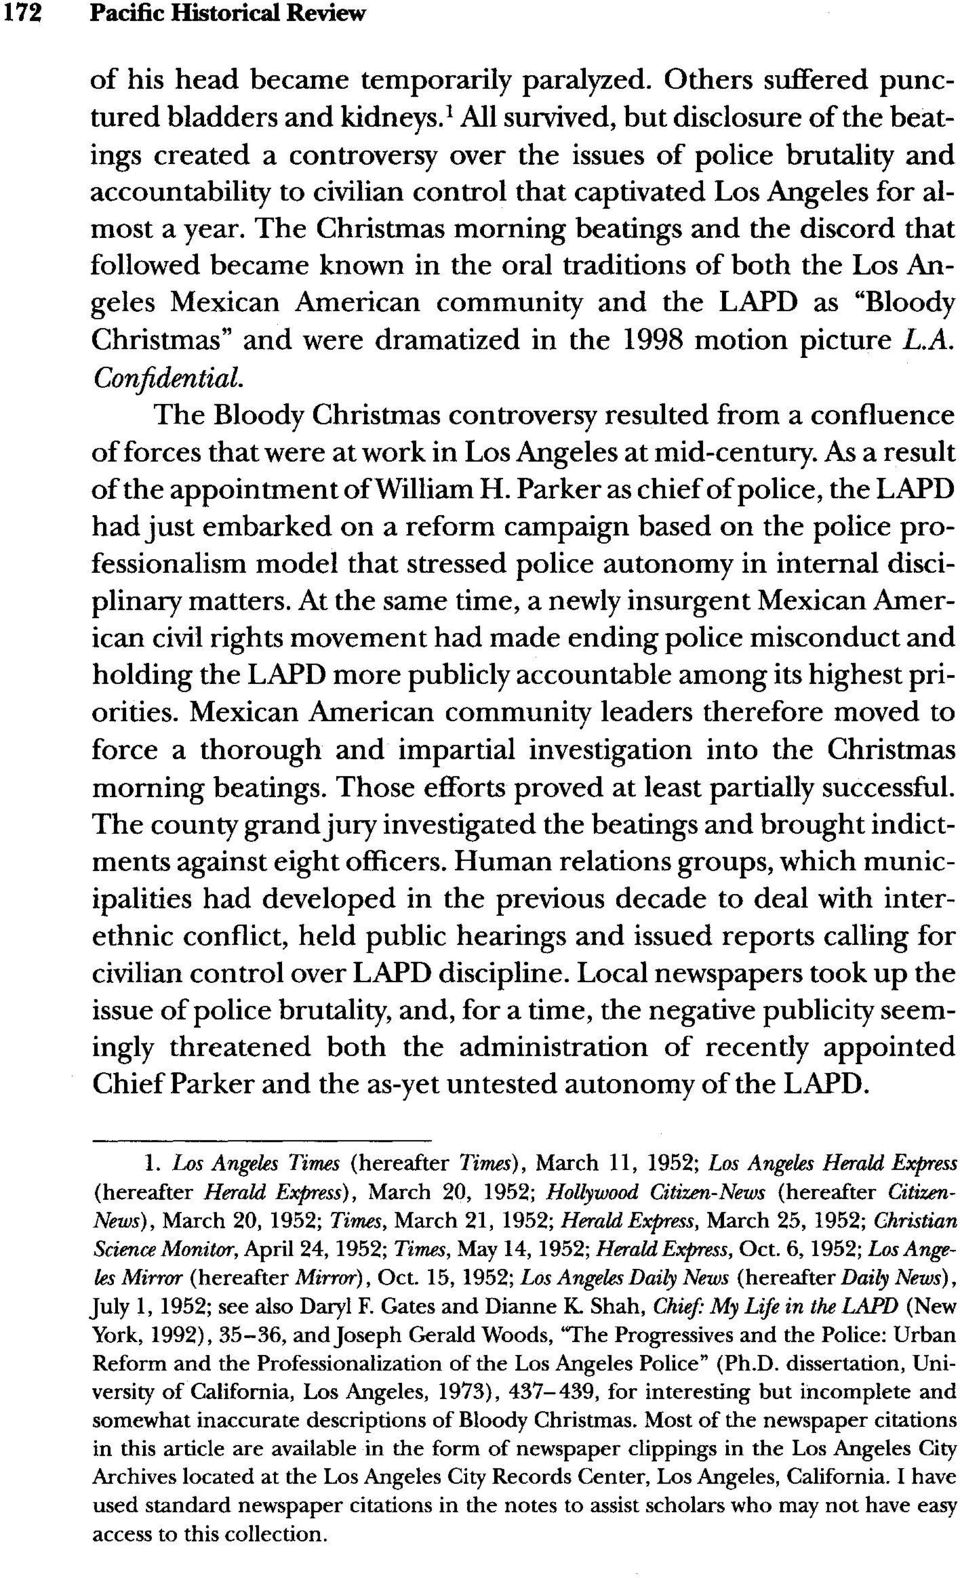 "The Christmas morning beatings and the discord that followed became known in the oral traditions of both the Los An- geles Mexican American community and the LAPD as ""Bloody Christmas"" and were"